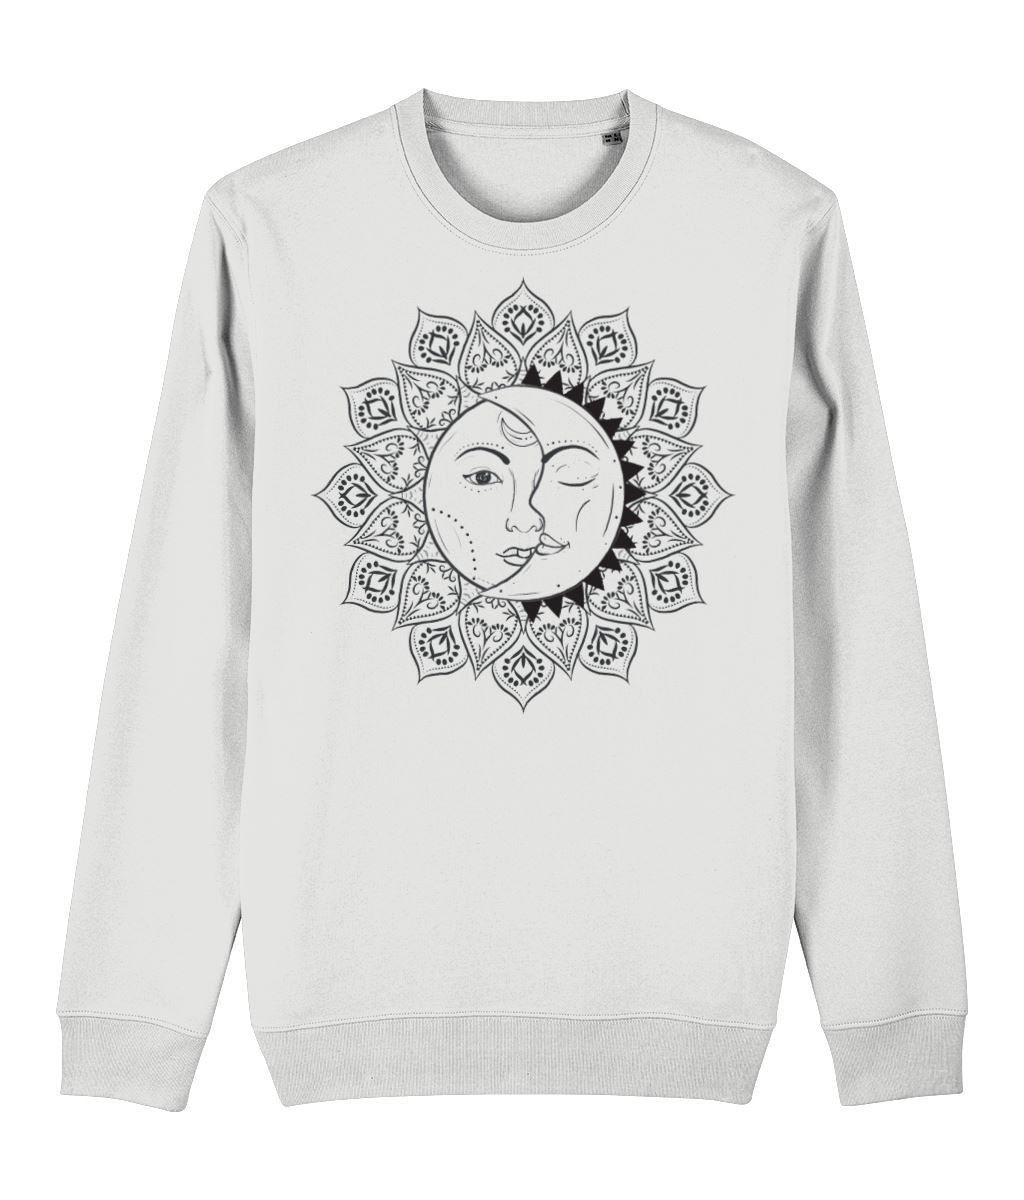 The Sun & The Moon Sweatshirt Clothing IndianBelieves White X-Small